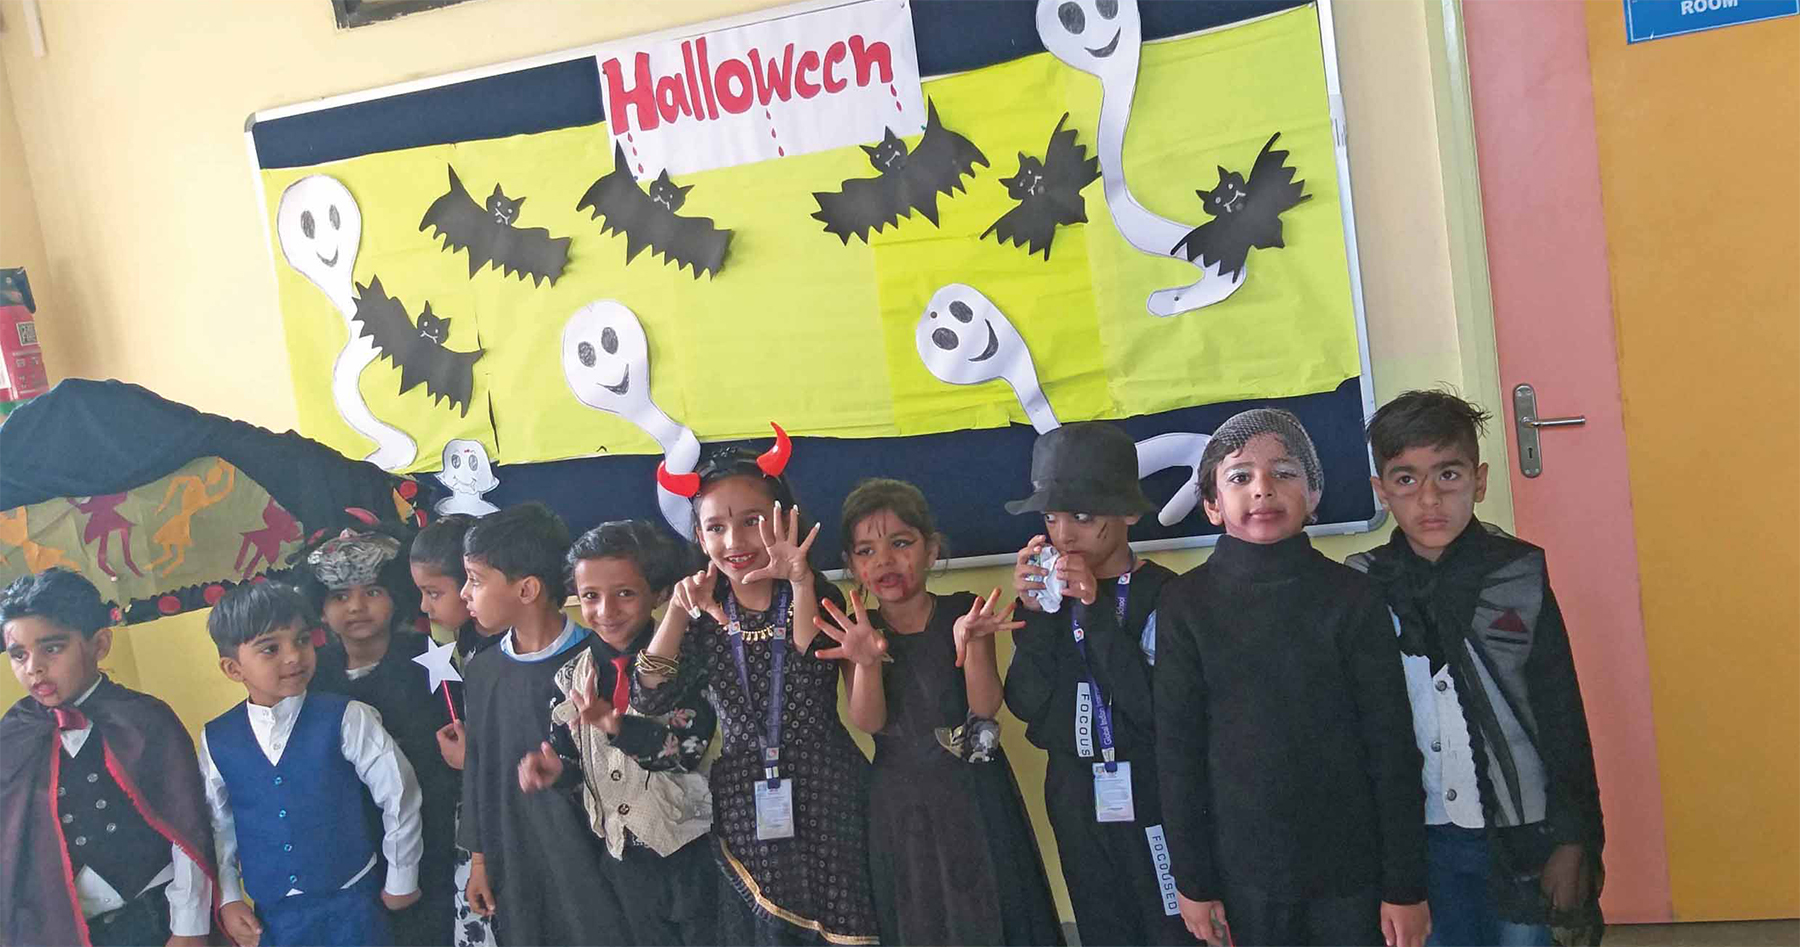 Trick-o-treating for tiny tots of GIIS; Halloween celebrations brighten up the campus